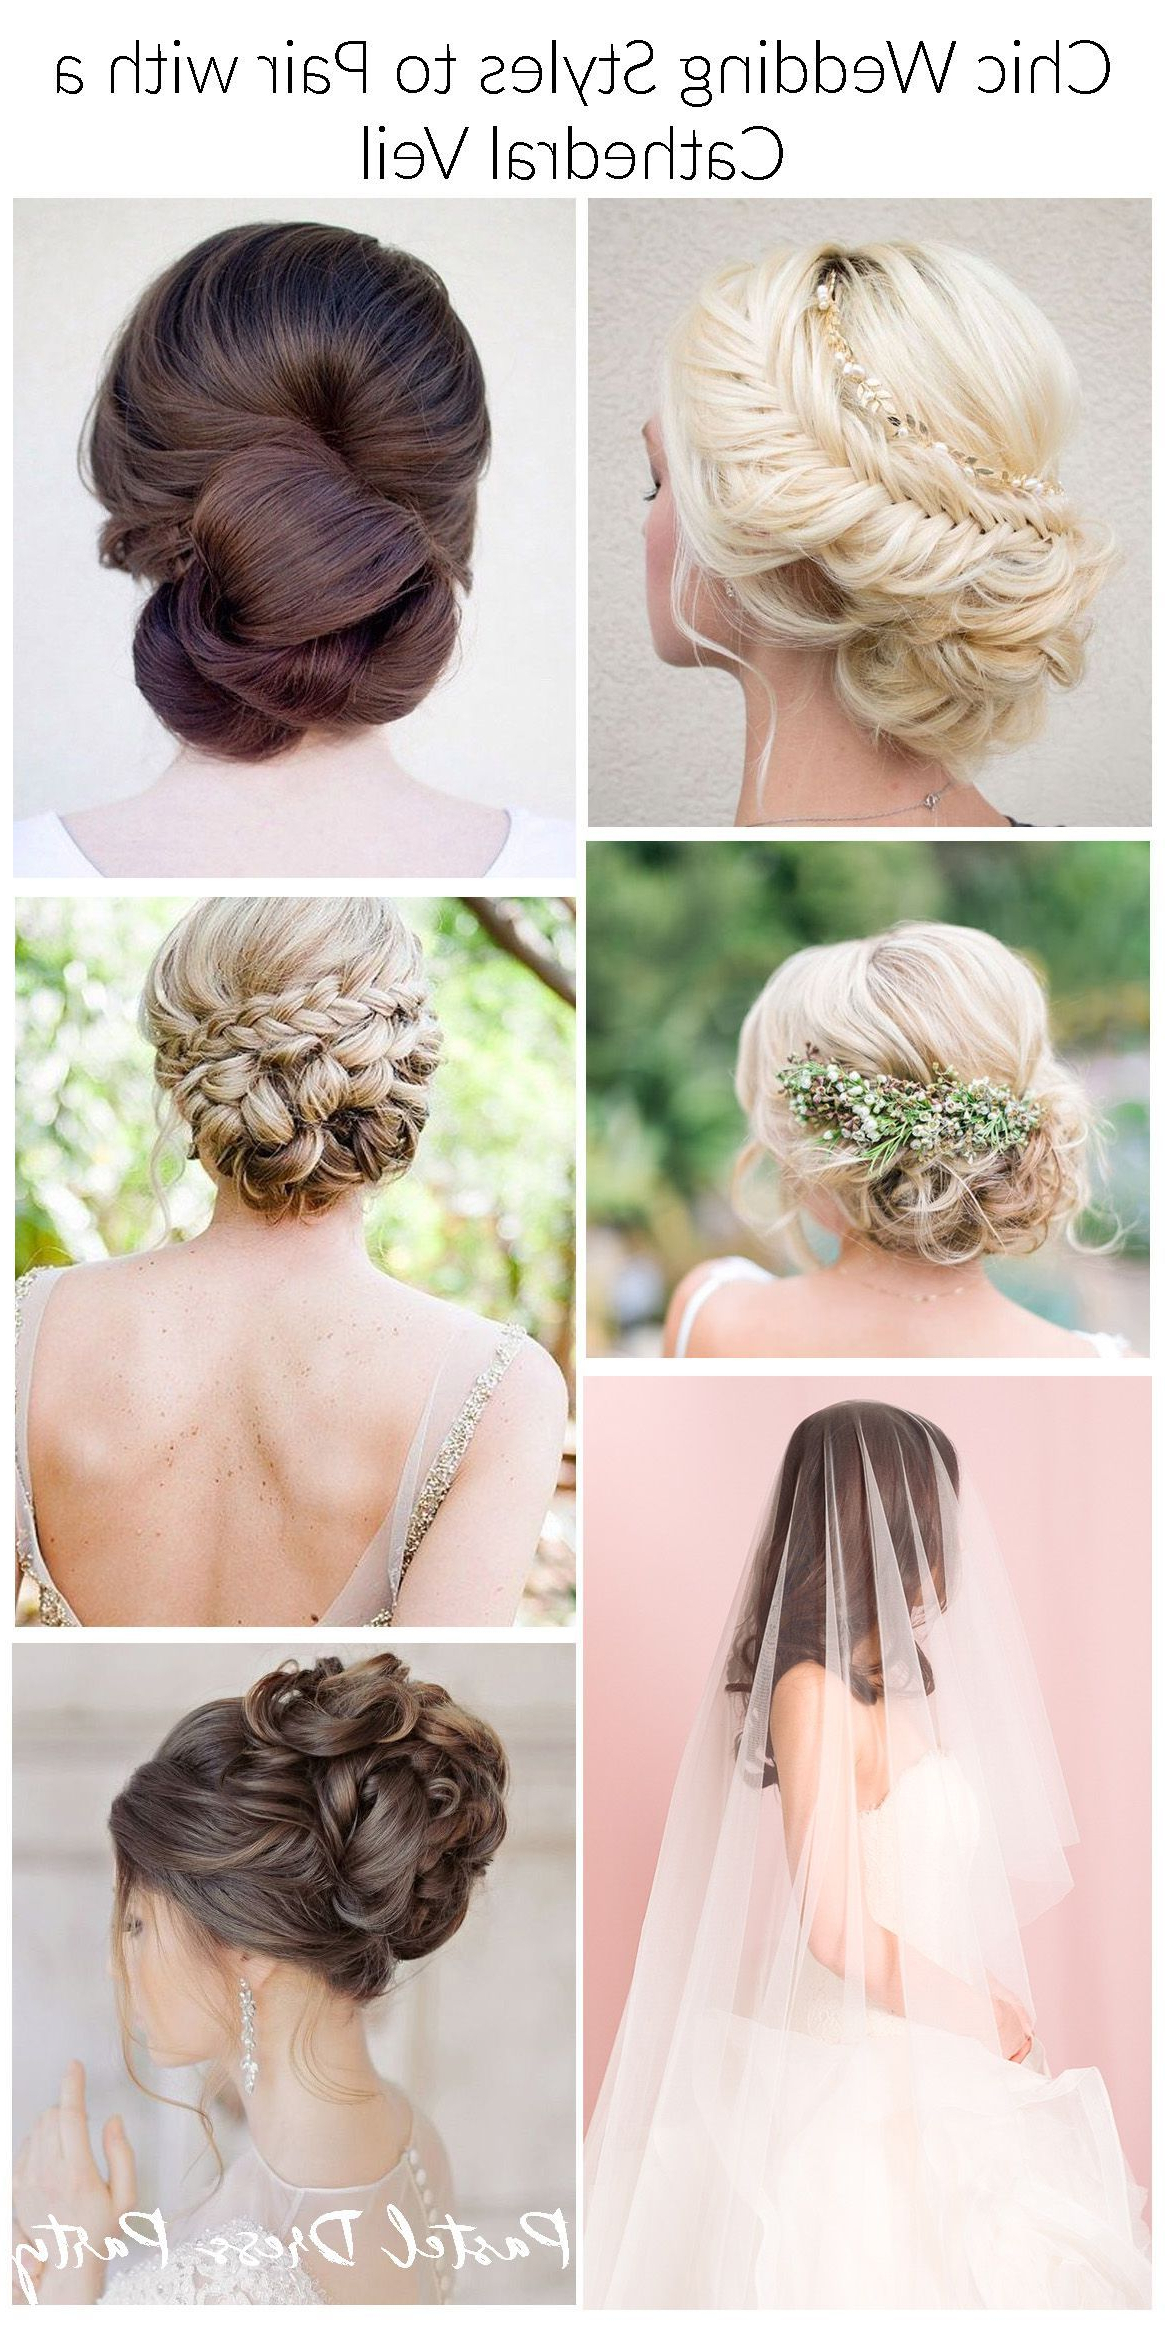 Widely Used Tender Bridal Hairstyles With A Veil For Five Chic Wedding Hairstyles To Pair With A Cathedral Veil (View 19 of 20)